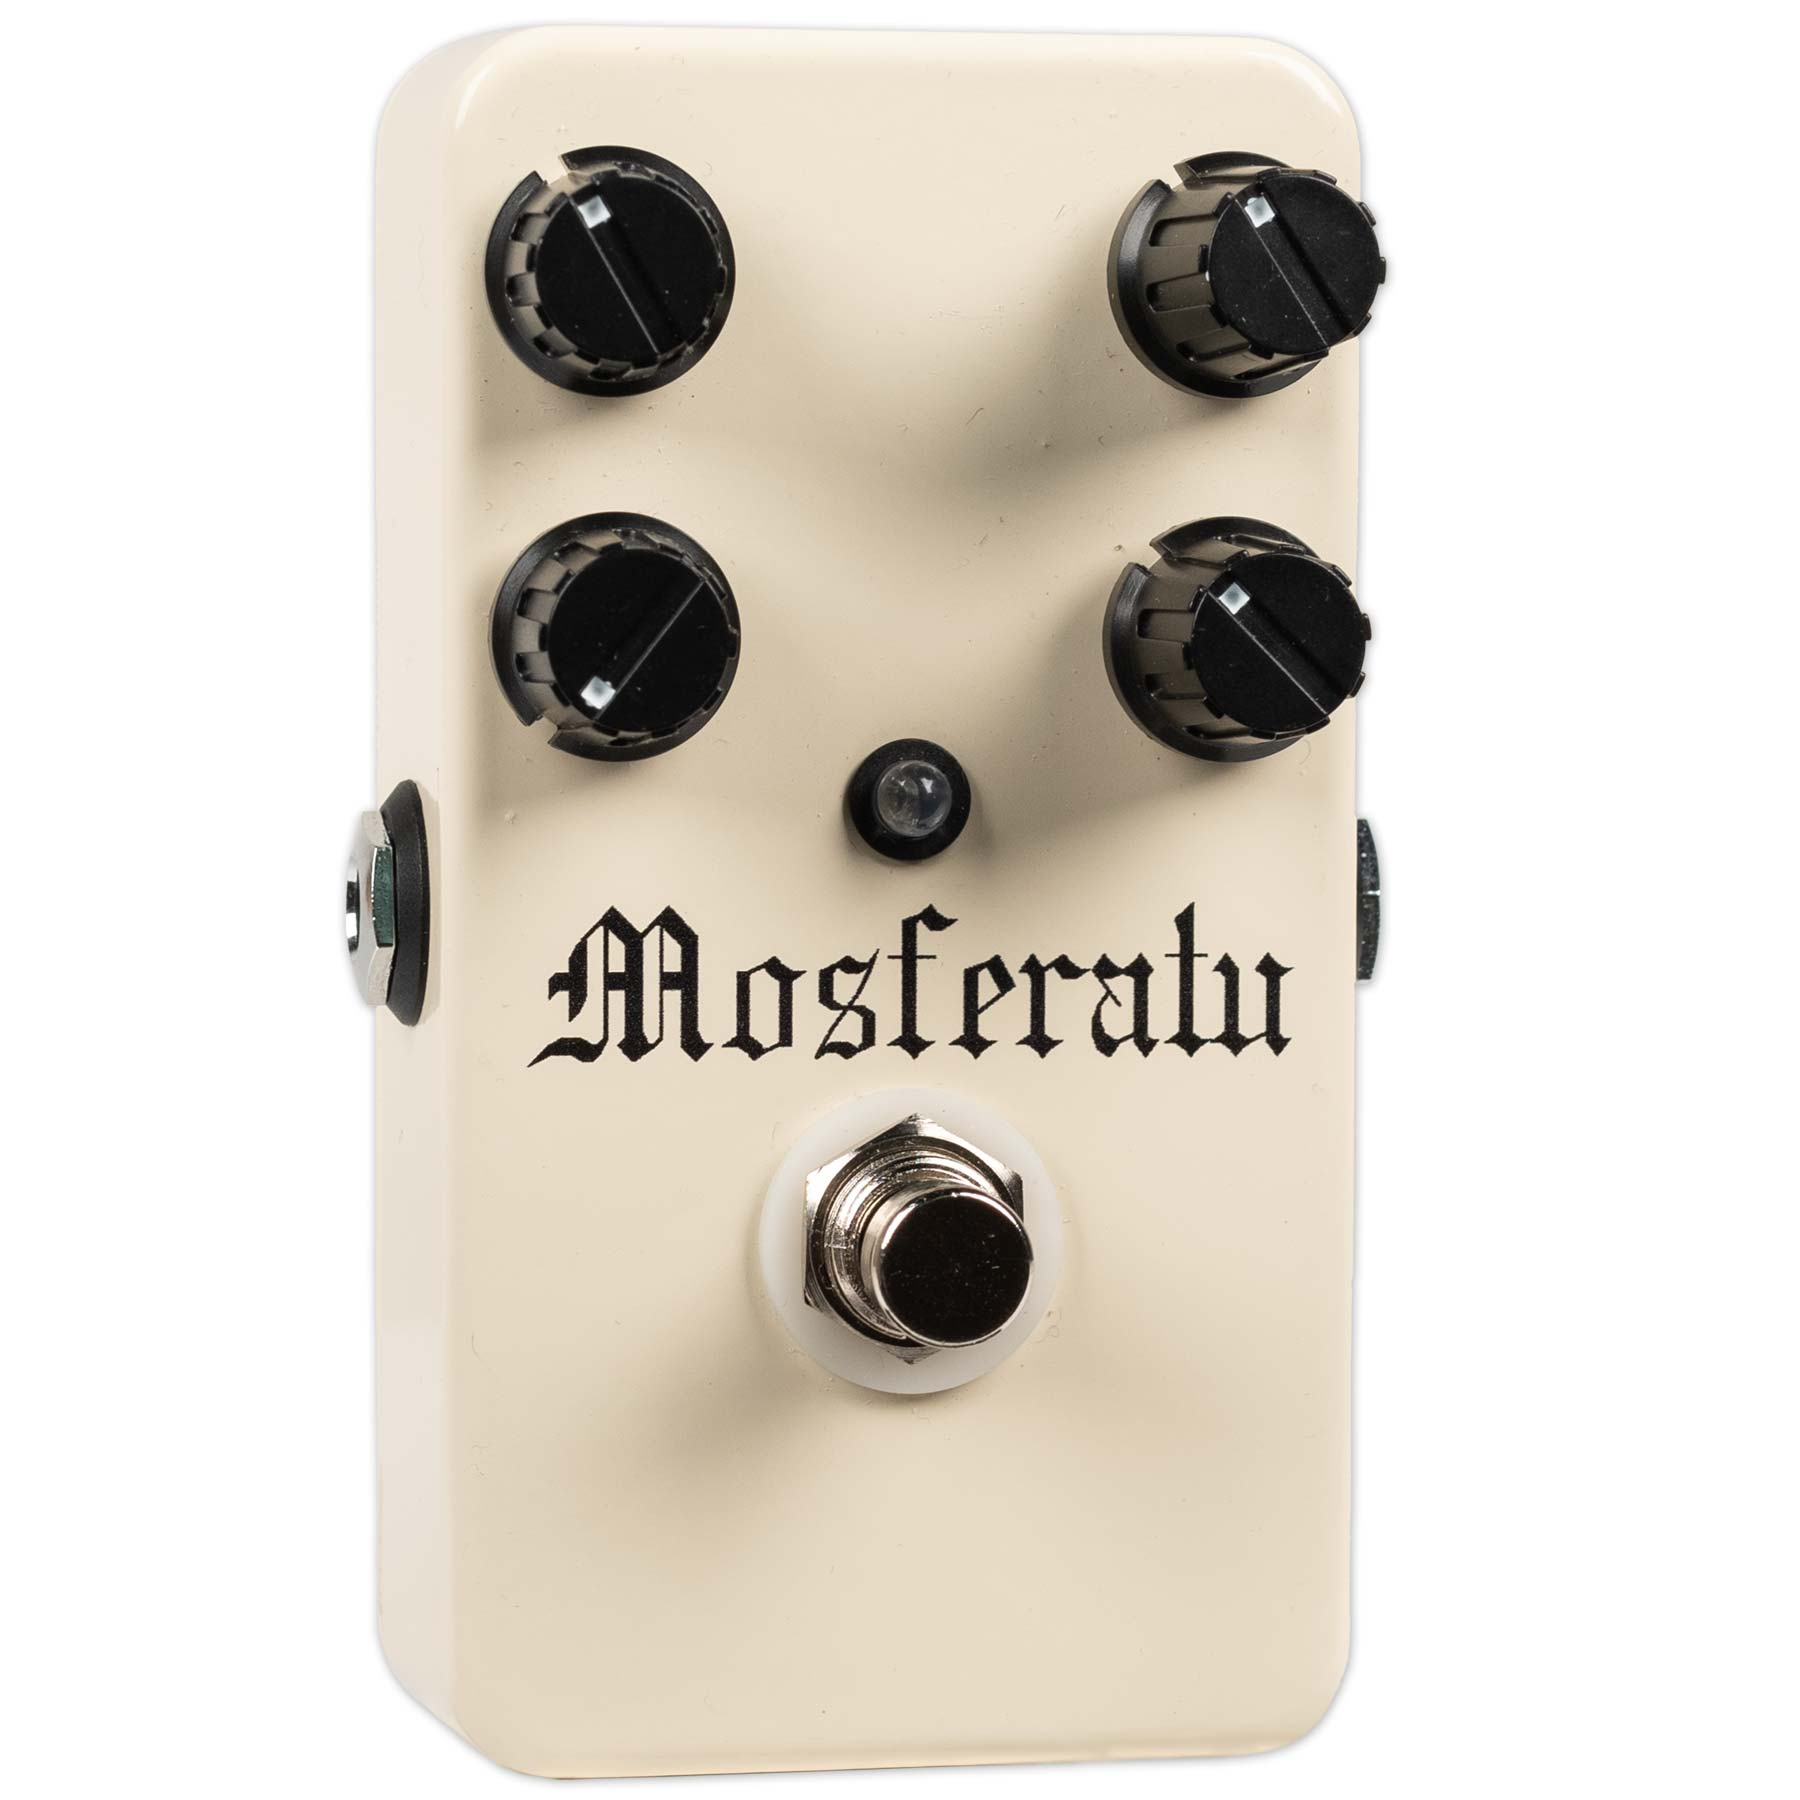 USED LOVEPEDAL LOW GAIN MOSFERATU WITH BOX